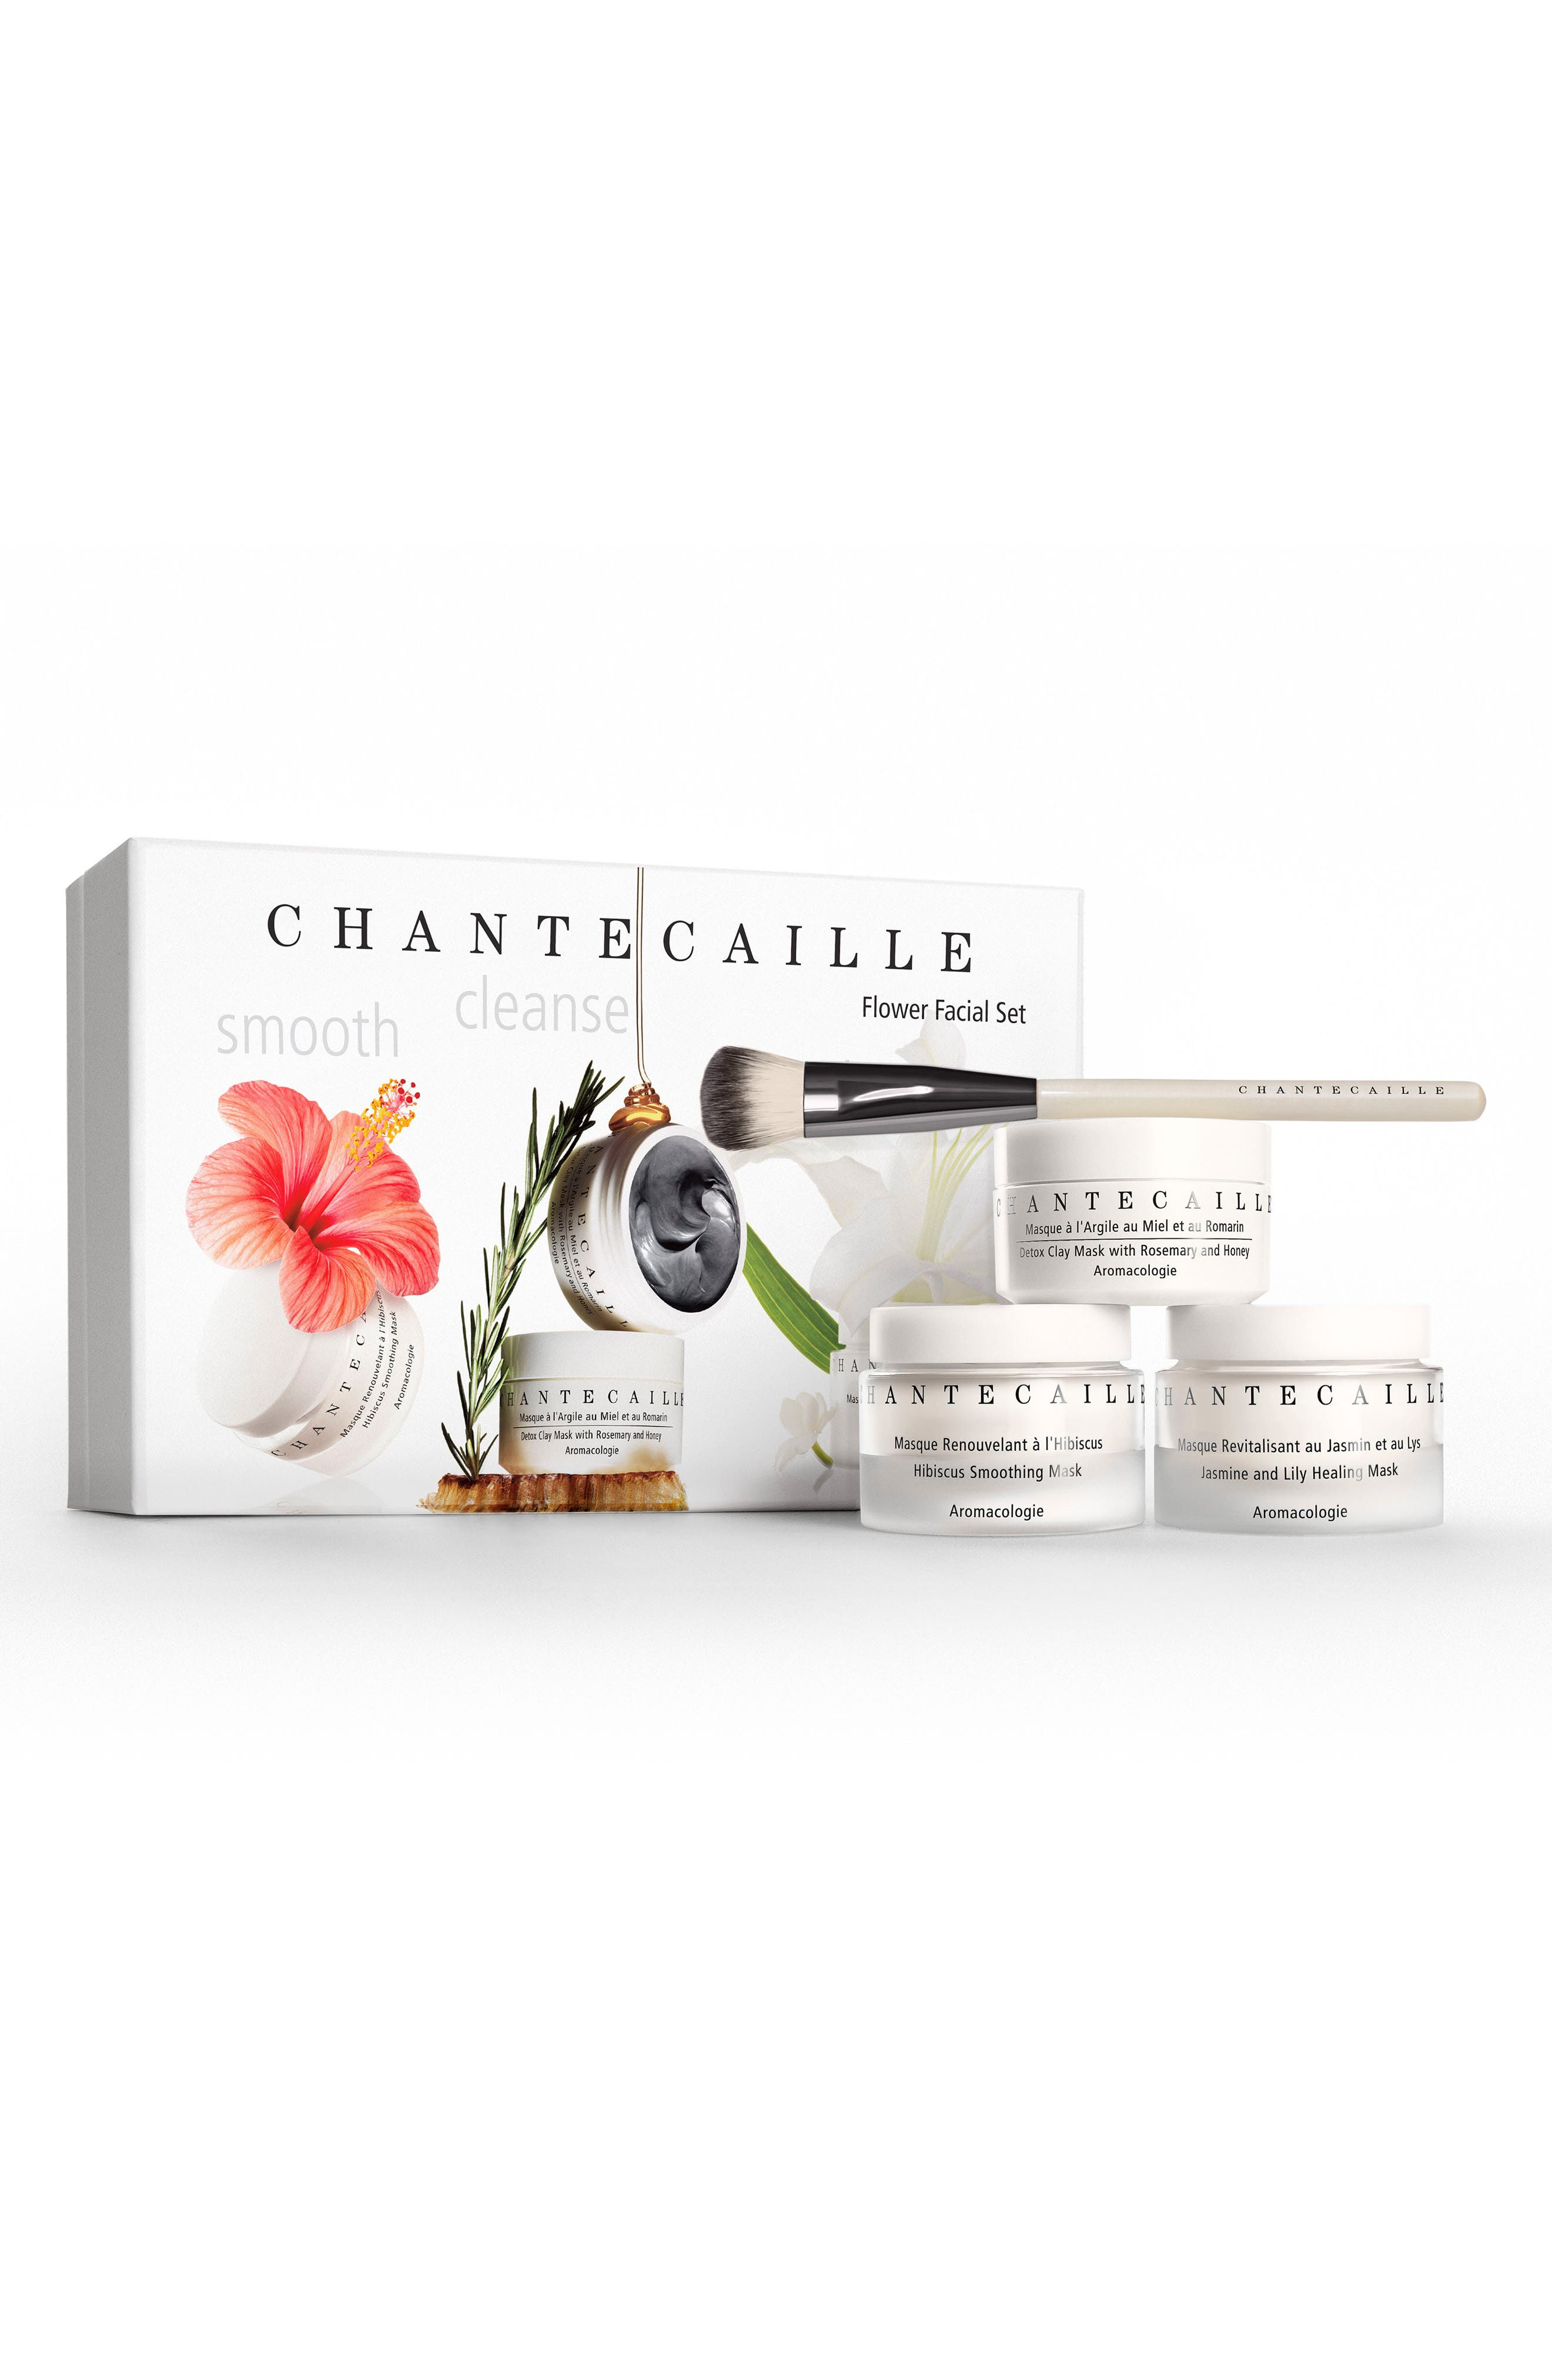 Chantecaille Flower Facial Set (Limited Edition)